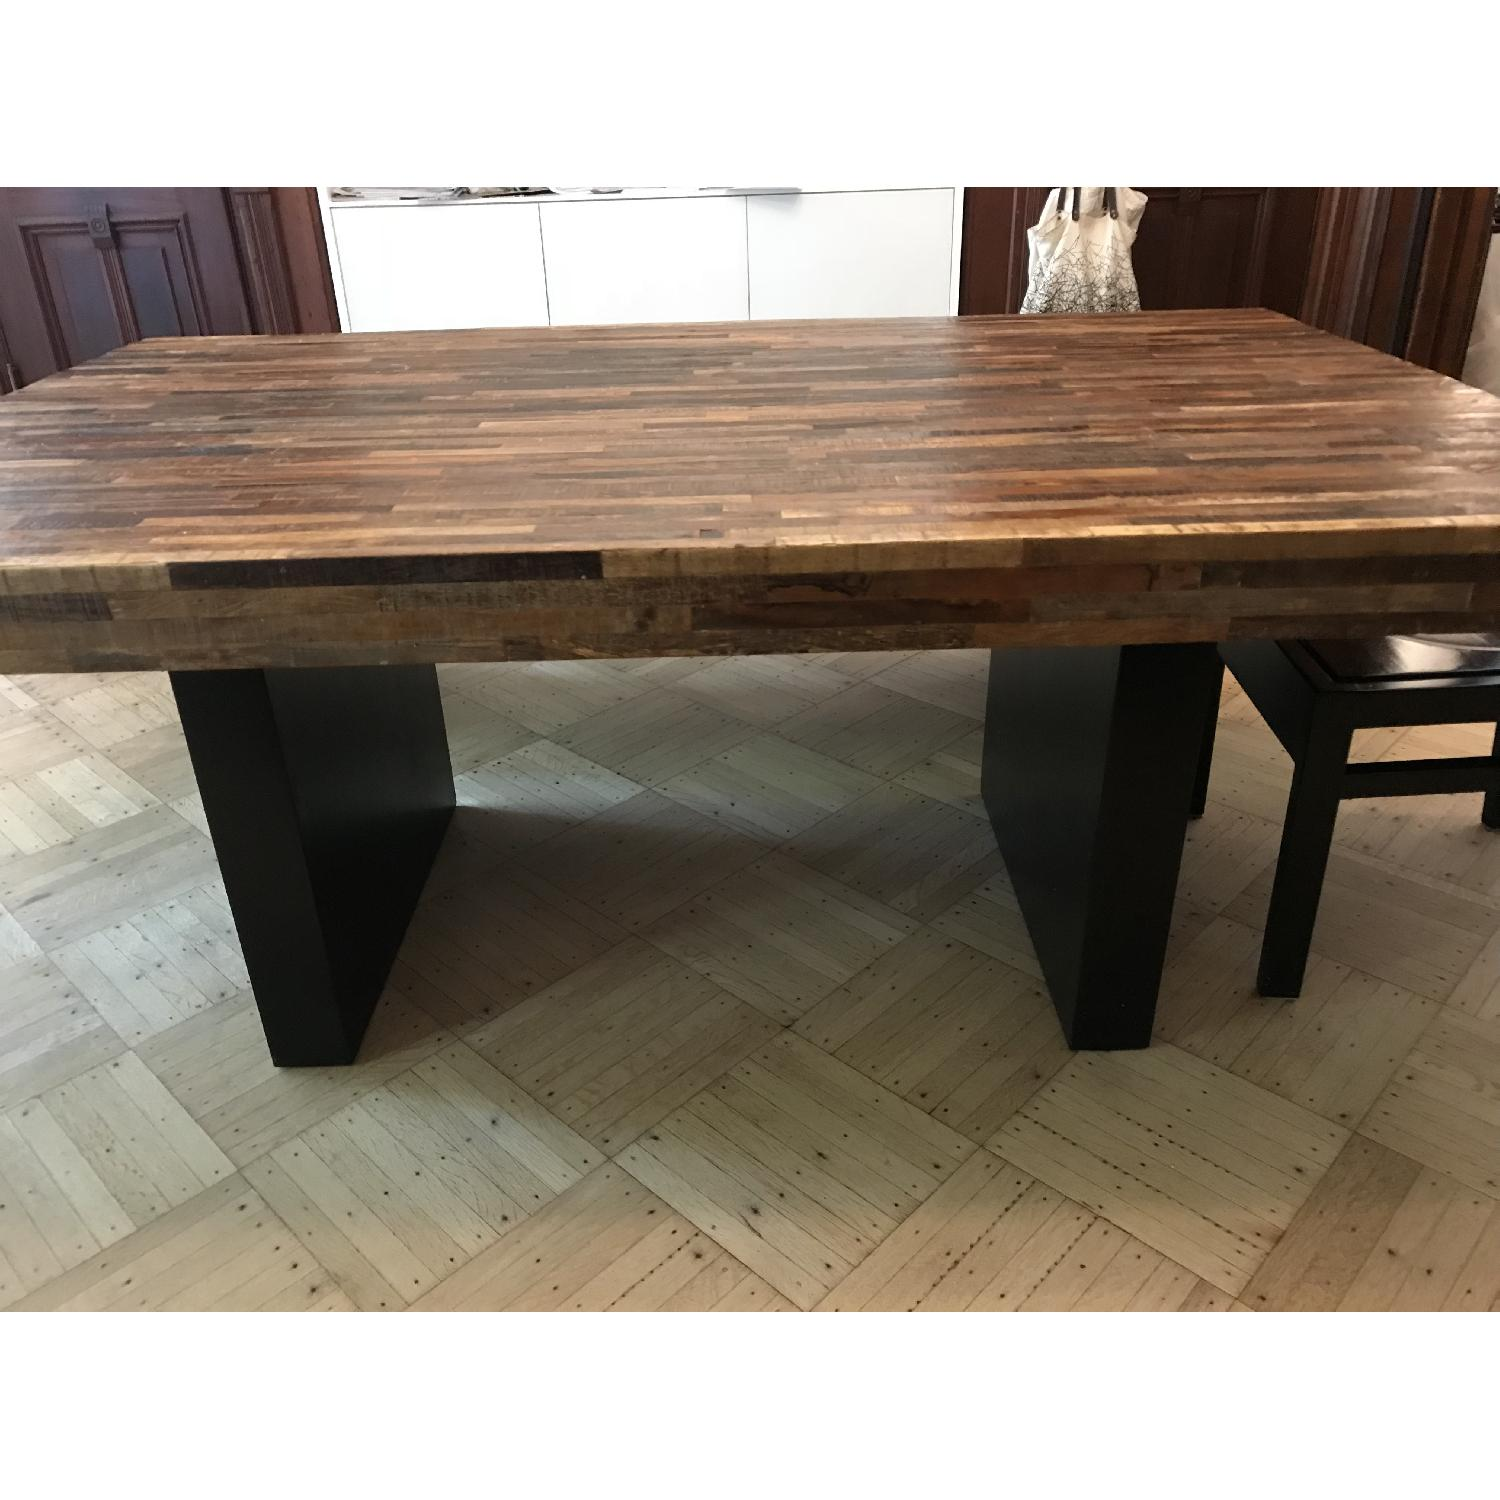 Environment Furniture Reclaimed Wood 5 Piece Dining Set - image-2